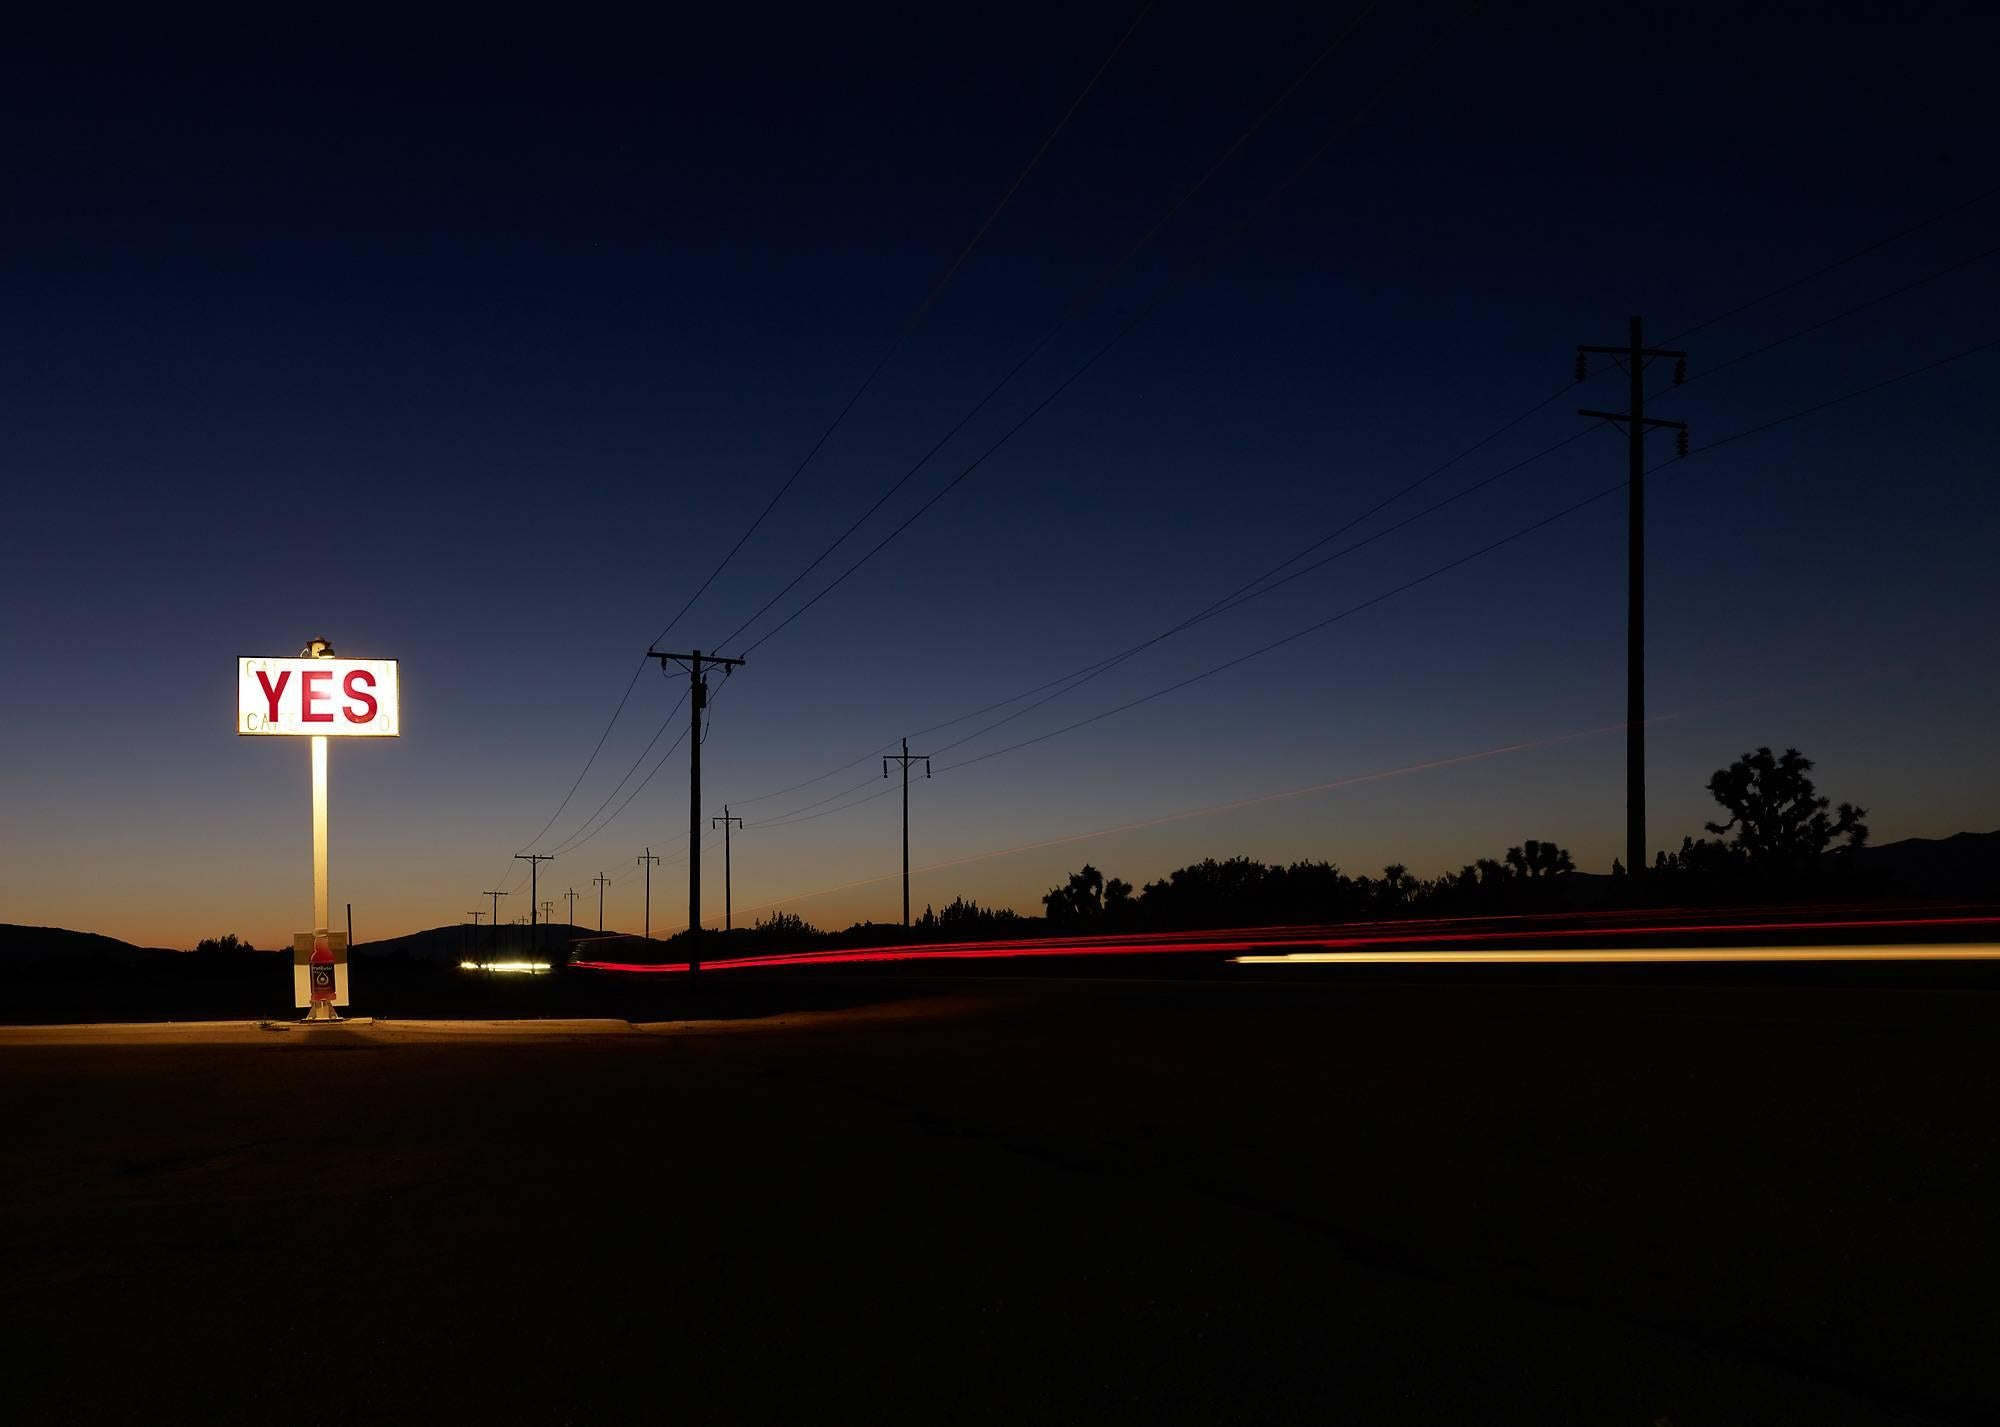 YES (framed) - large format photograph of conceptual motivational sign at night